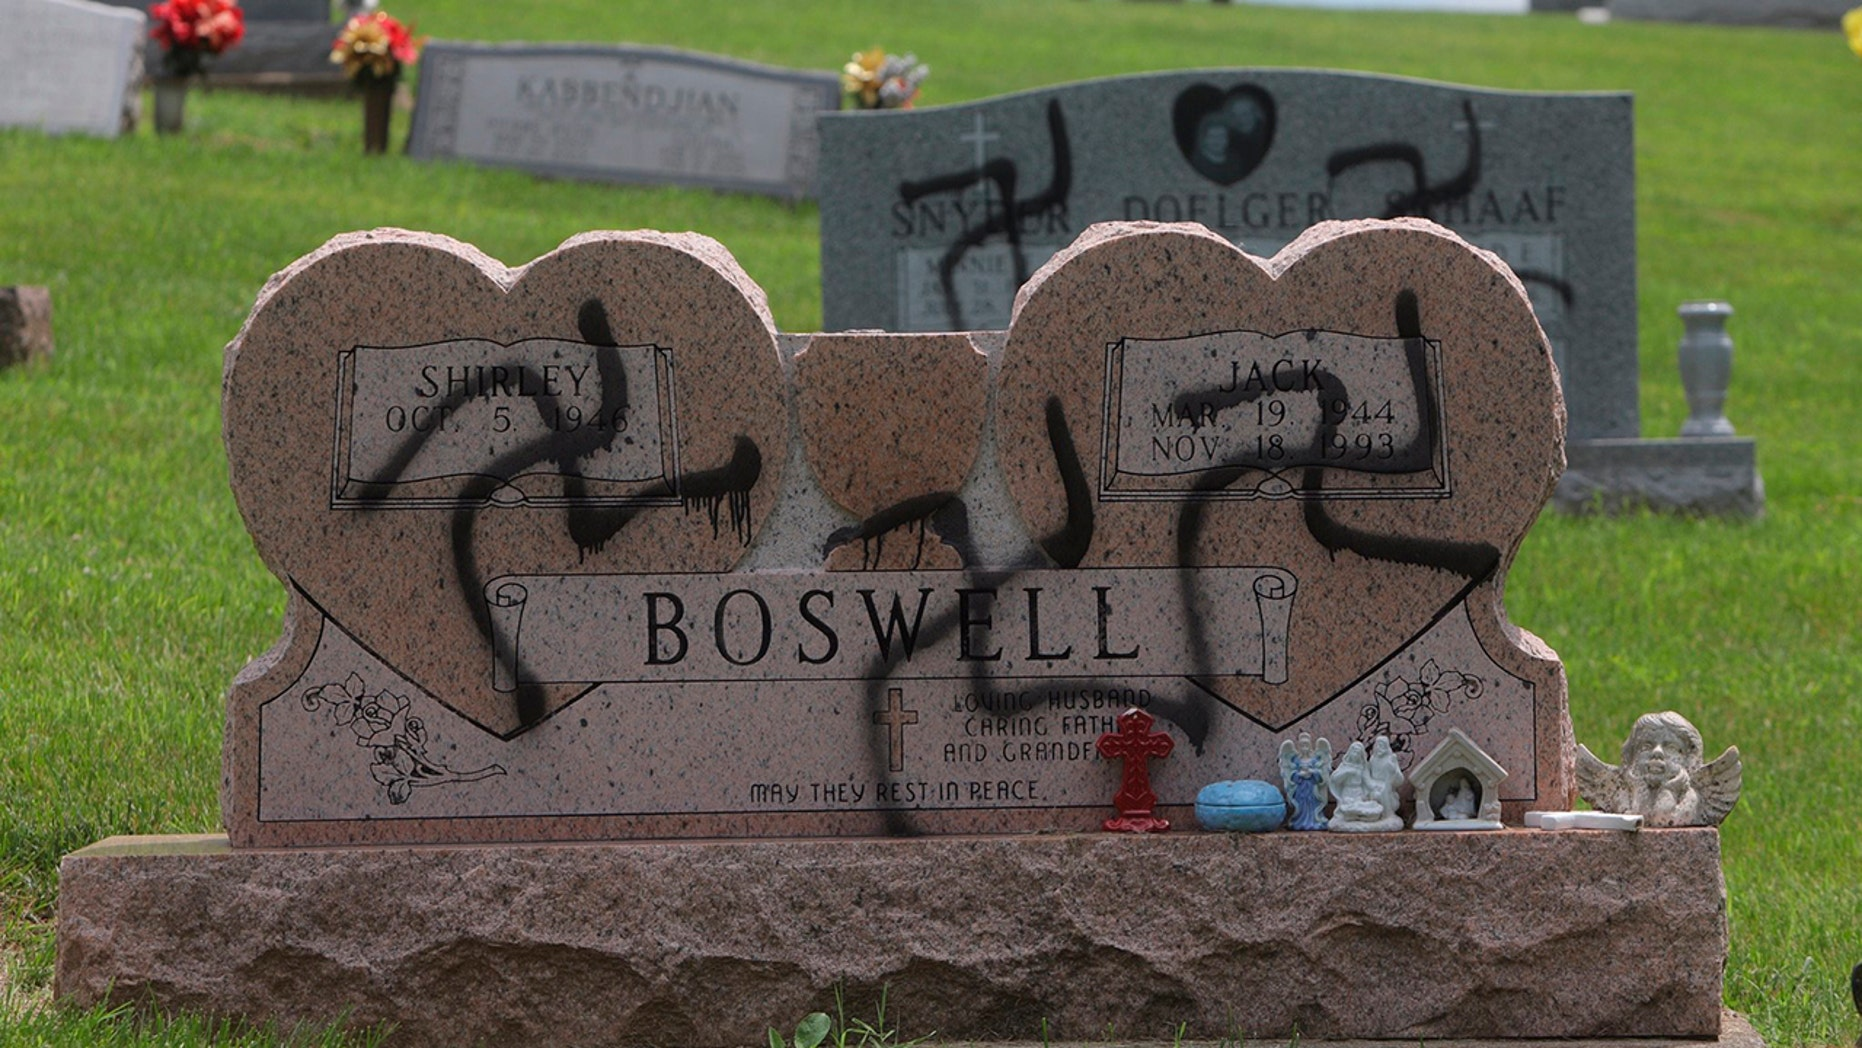 Man Accused Of Painting Swastikas On Graves Is No Stranger To Police